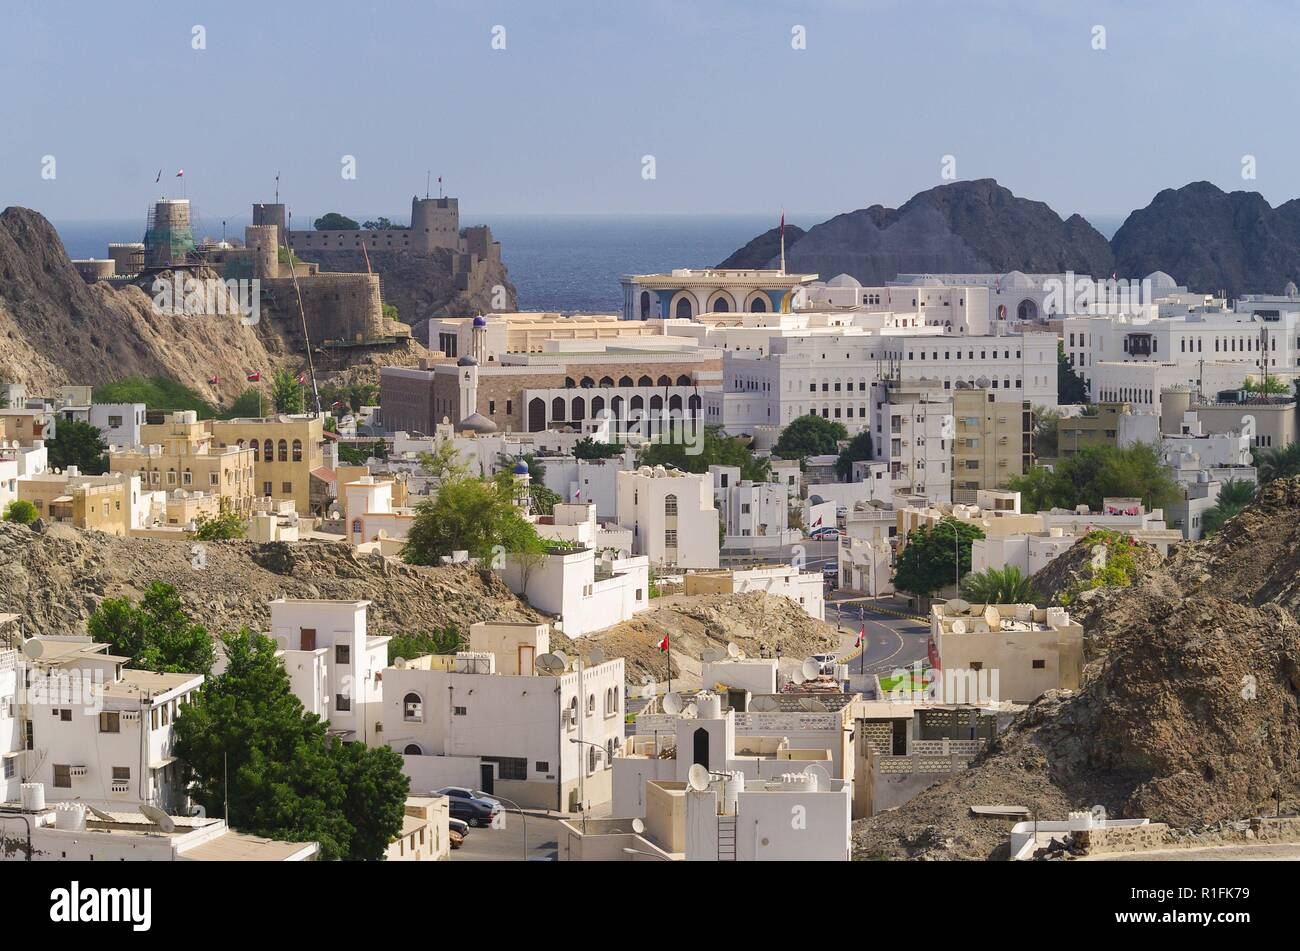 Omani Capital Stock Photos & Omani Capital Stock Images - Alamy